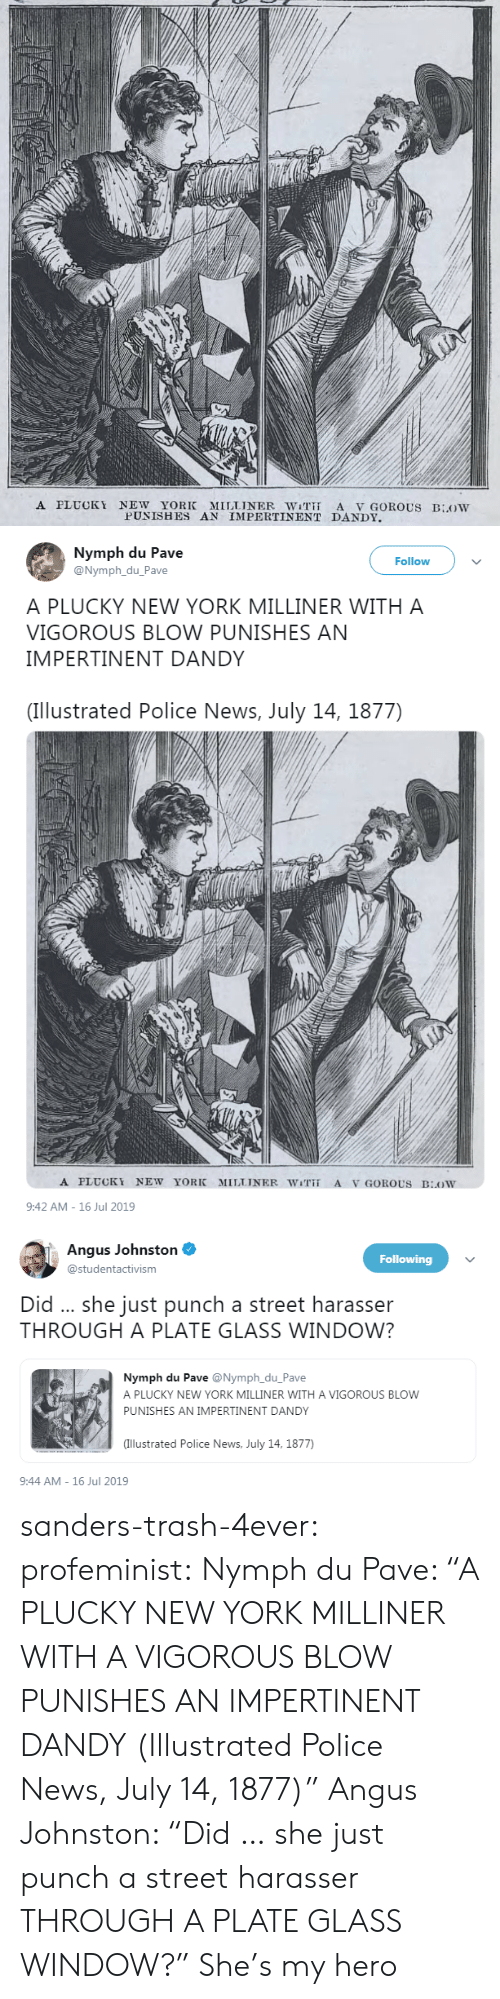 """My Hero: A PLUCKY NEW YORK MILLINER WiT A V GOROUS BLOW  PUNISHES AN IMPERTINENT DANDY   Nymph du Pave  @Nymph_du_Pave  Follow  A PLUCKY NEW YORK MILLINER WITH A  VIGOROUS BLOW PUNISHES AN  IMPERTINENT DANDY  (Illustrated Police News, July 14, 1877)  A PLUCKY NEW YORK  MILLINER WiT  A V GOROUS BOW  9:42 AM-16 Jul 2019   Angus Johnston  Following  @studentactivism  Did .. she just punch a street harasser  THROUGH A PLATE GLASS WINDOW?  Nymph du Pave @Nymph_du_Pave  A PLUCKY NEW YORK MILLINER WITH A VIGOROUS BLOW  PUNISHES AN IMPERTINENT DANDY  (Illustrated Police News, July 14, 1877)  9:44 AM-16 Jul 2019 sanders-trash-4ever: profeminist:  Nymph du Pave: """"A PLUCKY NEW YORK MILLINER WITH A VIGOROUS BLOW PUNISHES AN IMPERTINENT DANDY  (Illustrated Police News, July 14, 1877)""""   Angus Johnston: """"Did … she just punch a street harasser THROUGH A PLATE GLASS WINDOW?""""   She's my hero"""